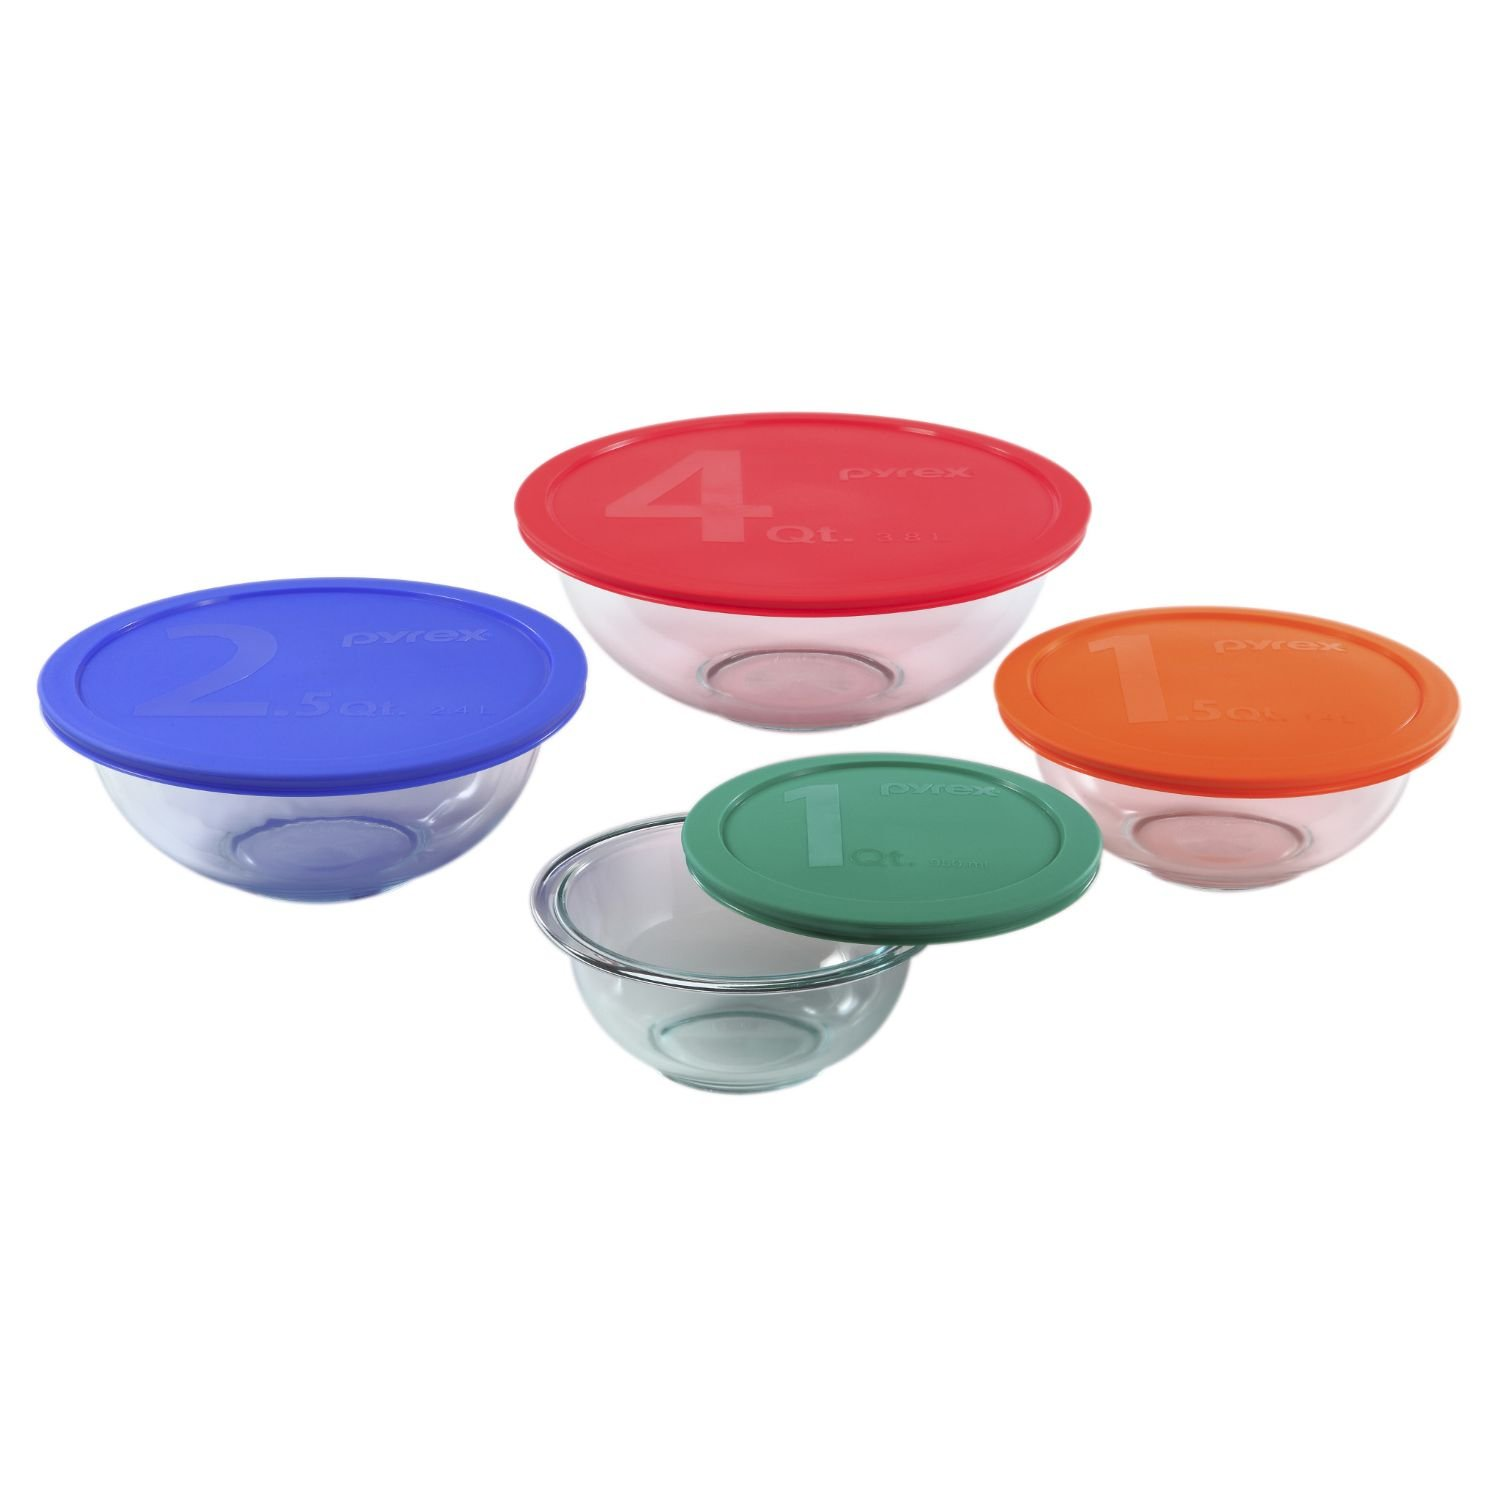 Pyrex 8-Piece Smart Essentials Glass Bowl Set